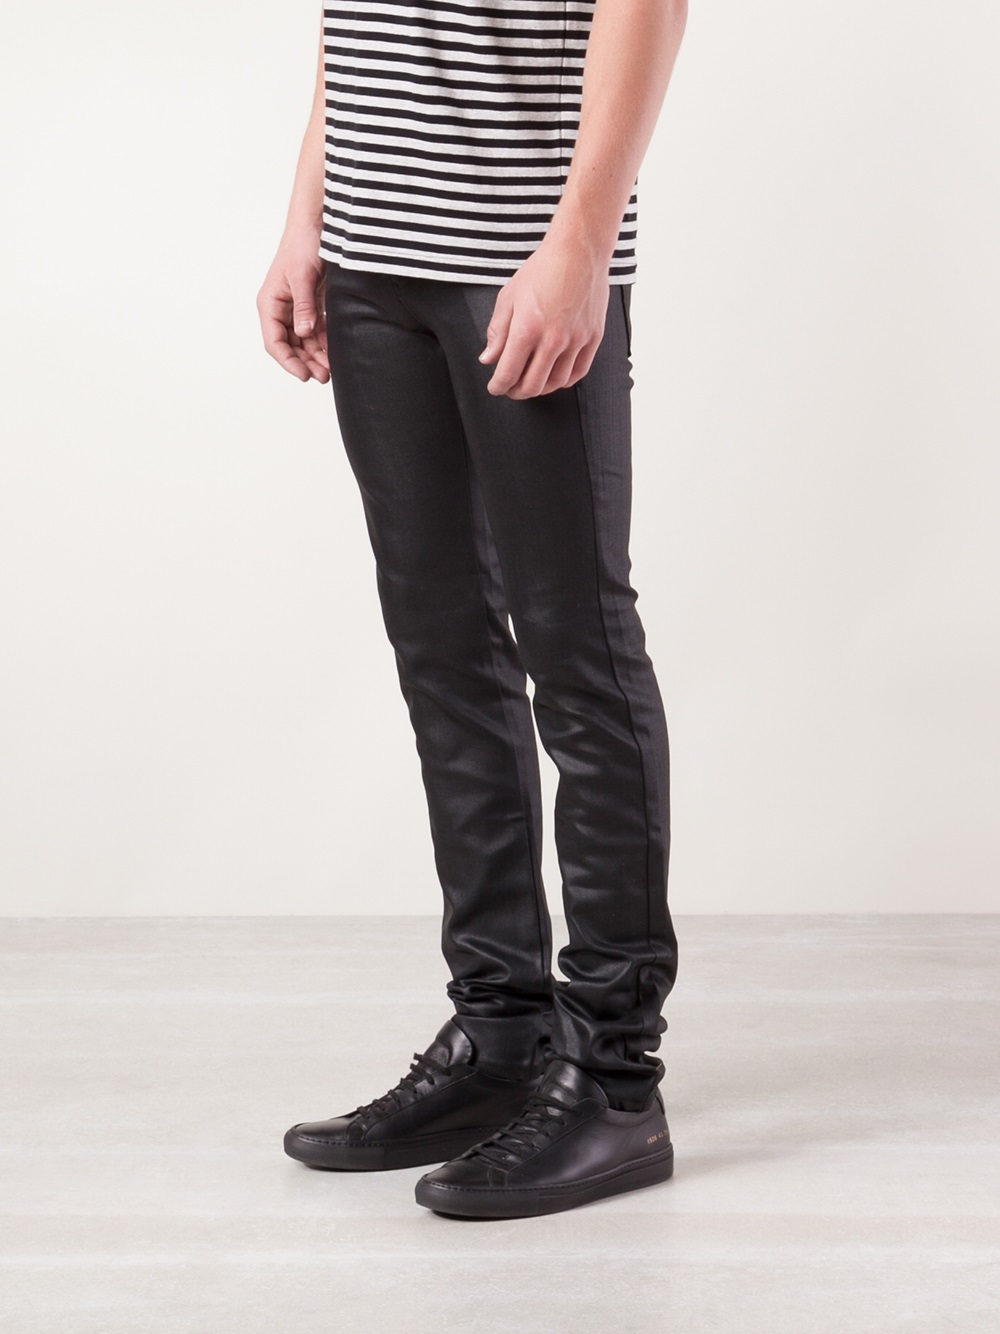 Lyst - Naked & Famous Super Skinny Guy Jeans in Black for Men